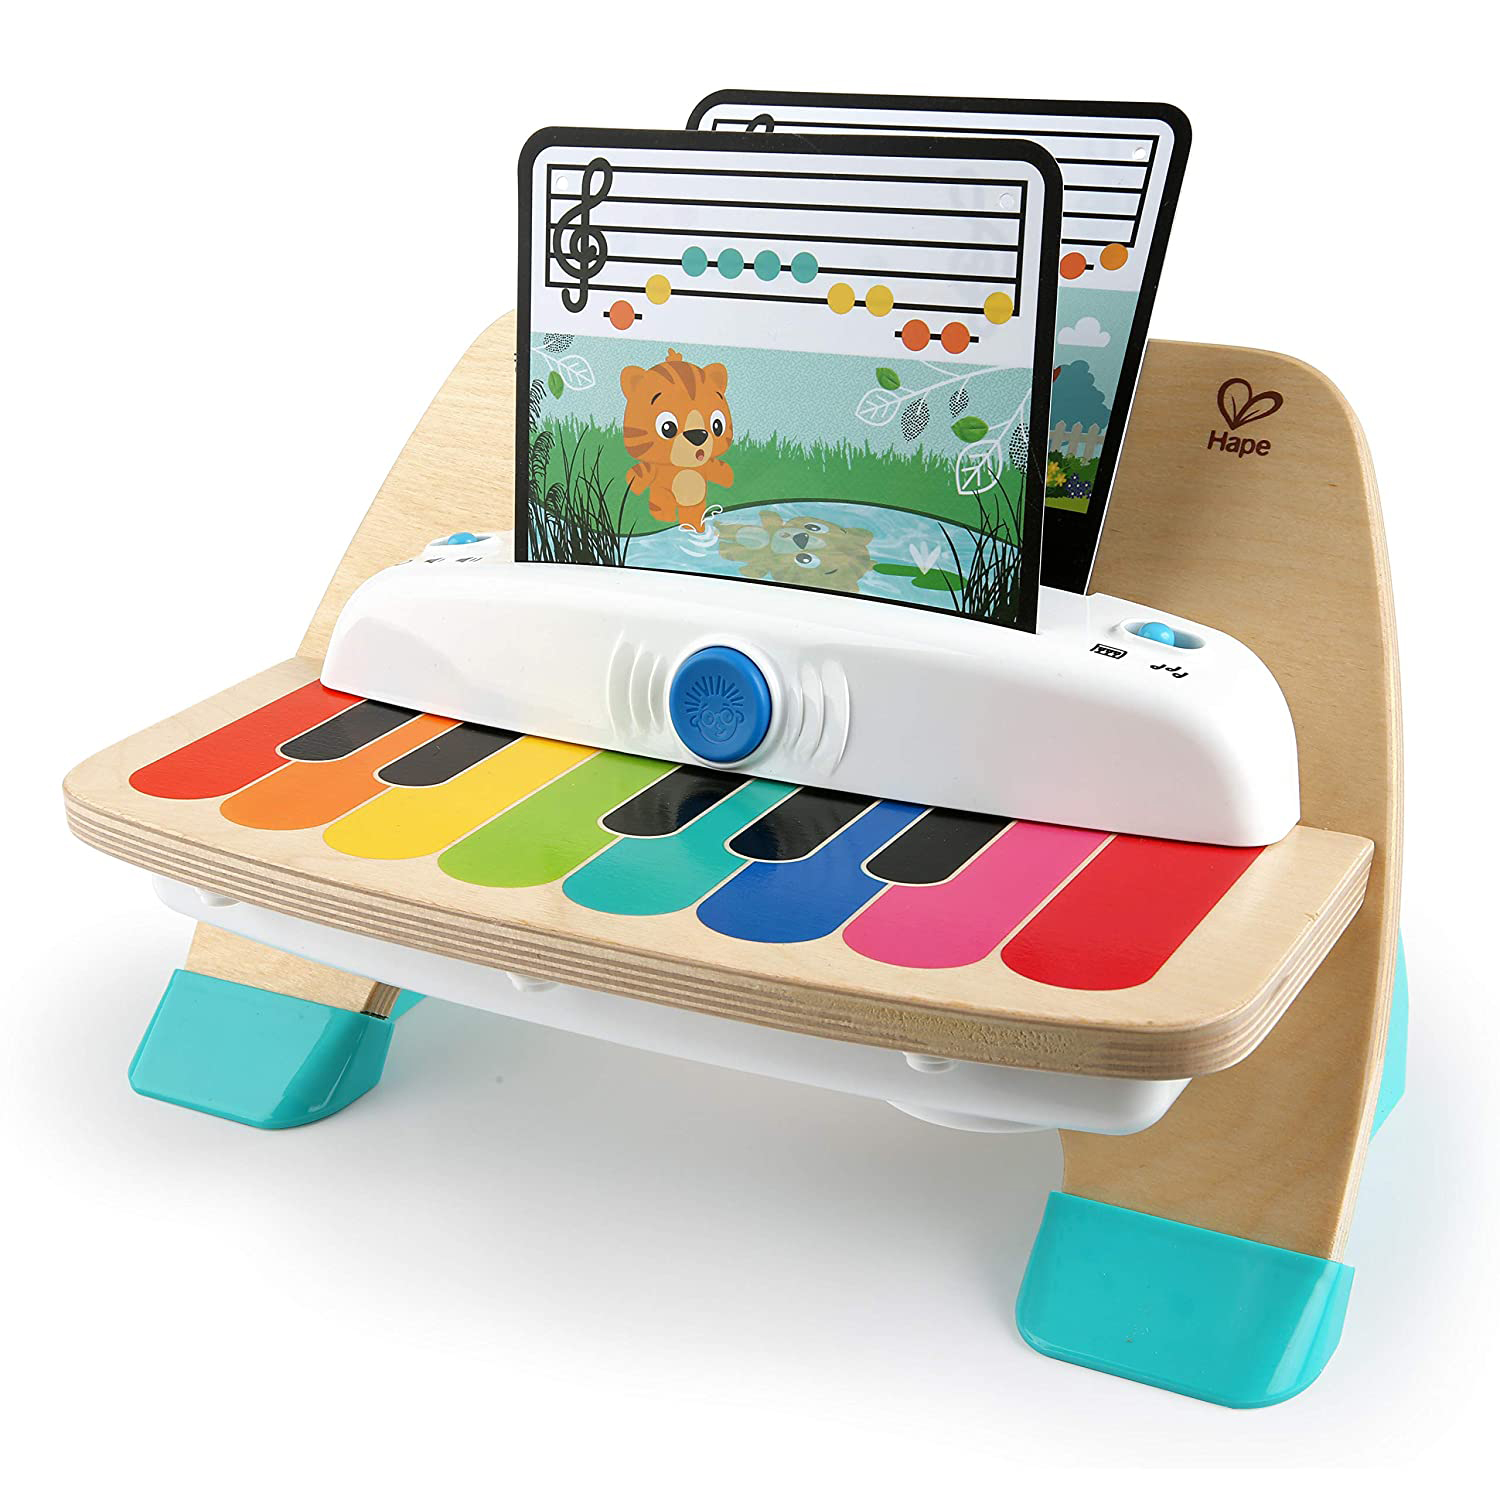 Best Musical Toy for 6-Month-Olds: Baby Einstein Magic Touch Wooden Piano